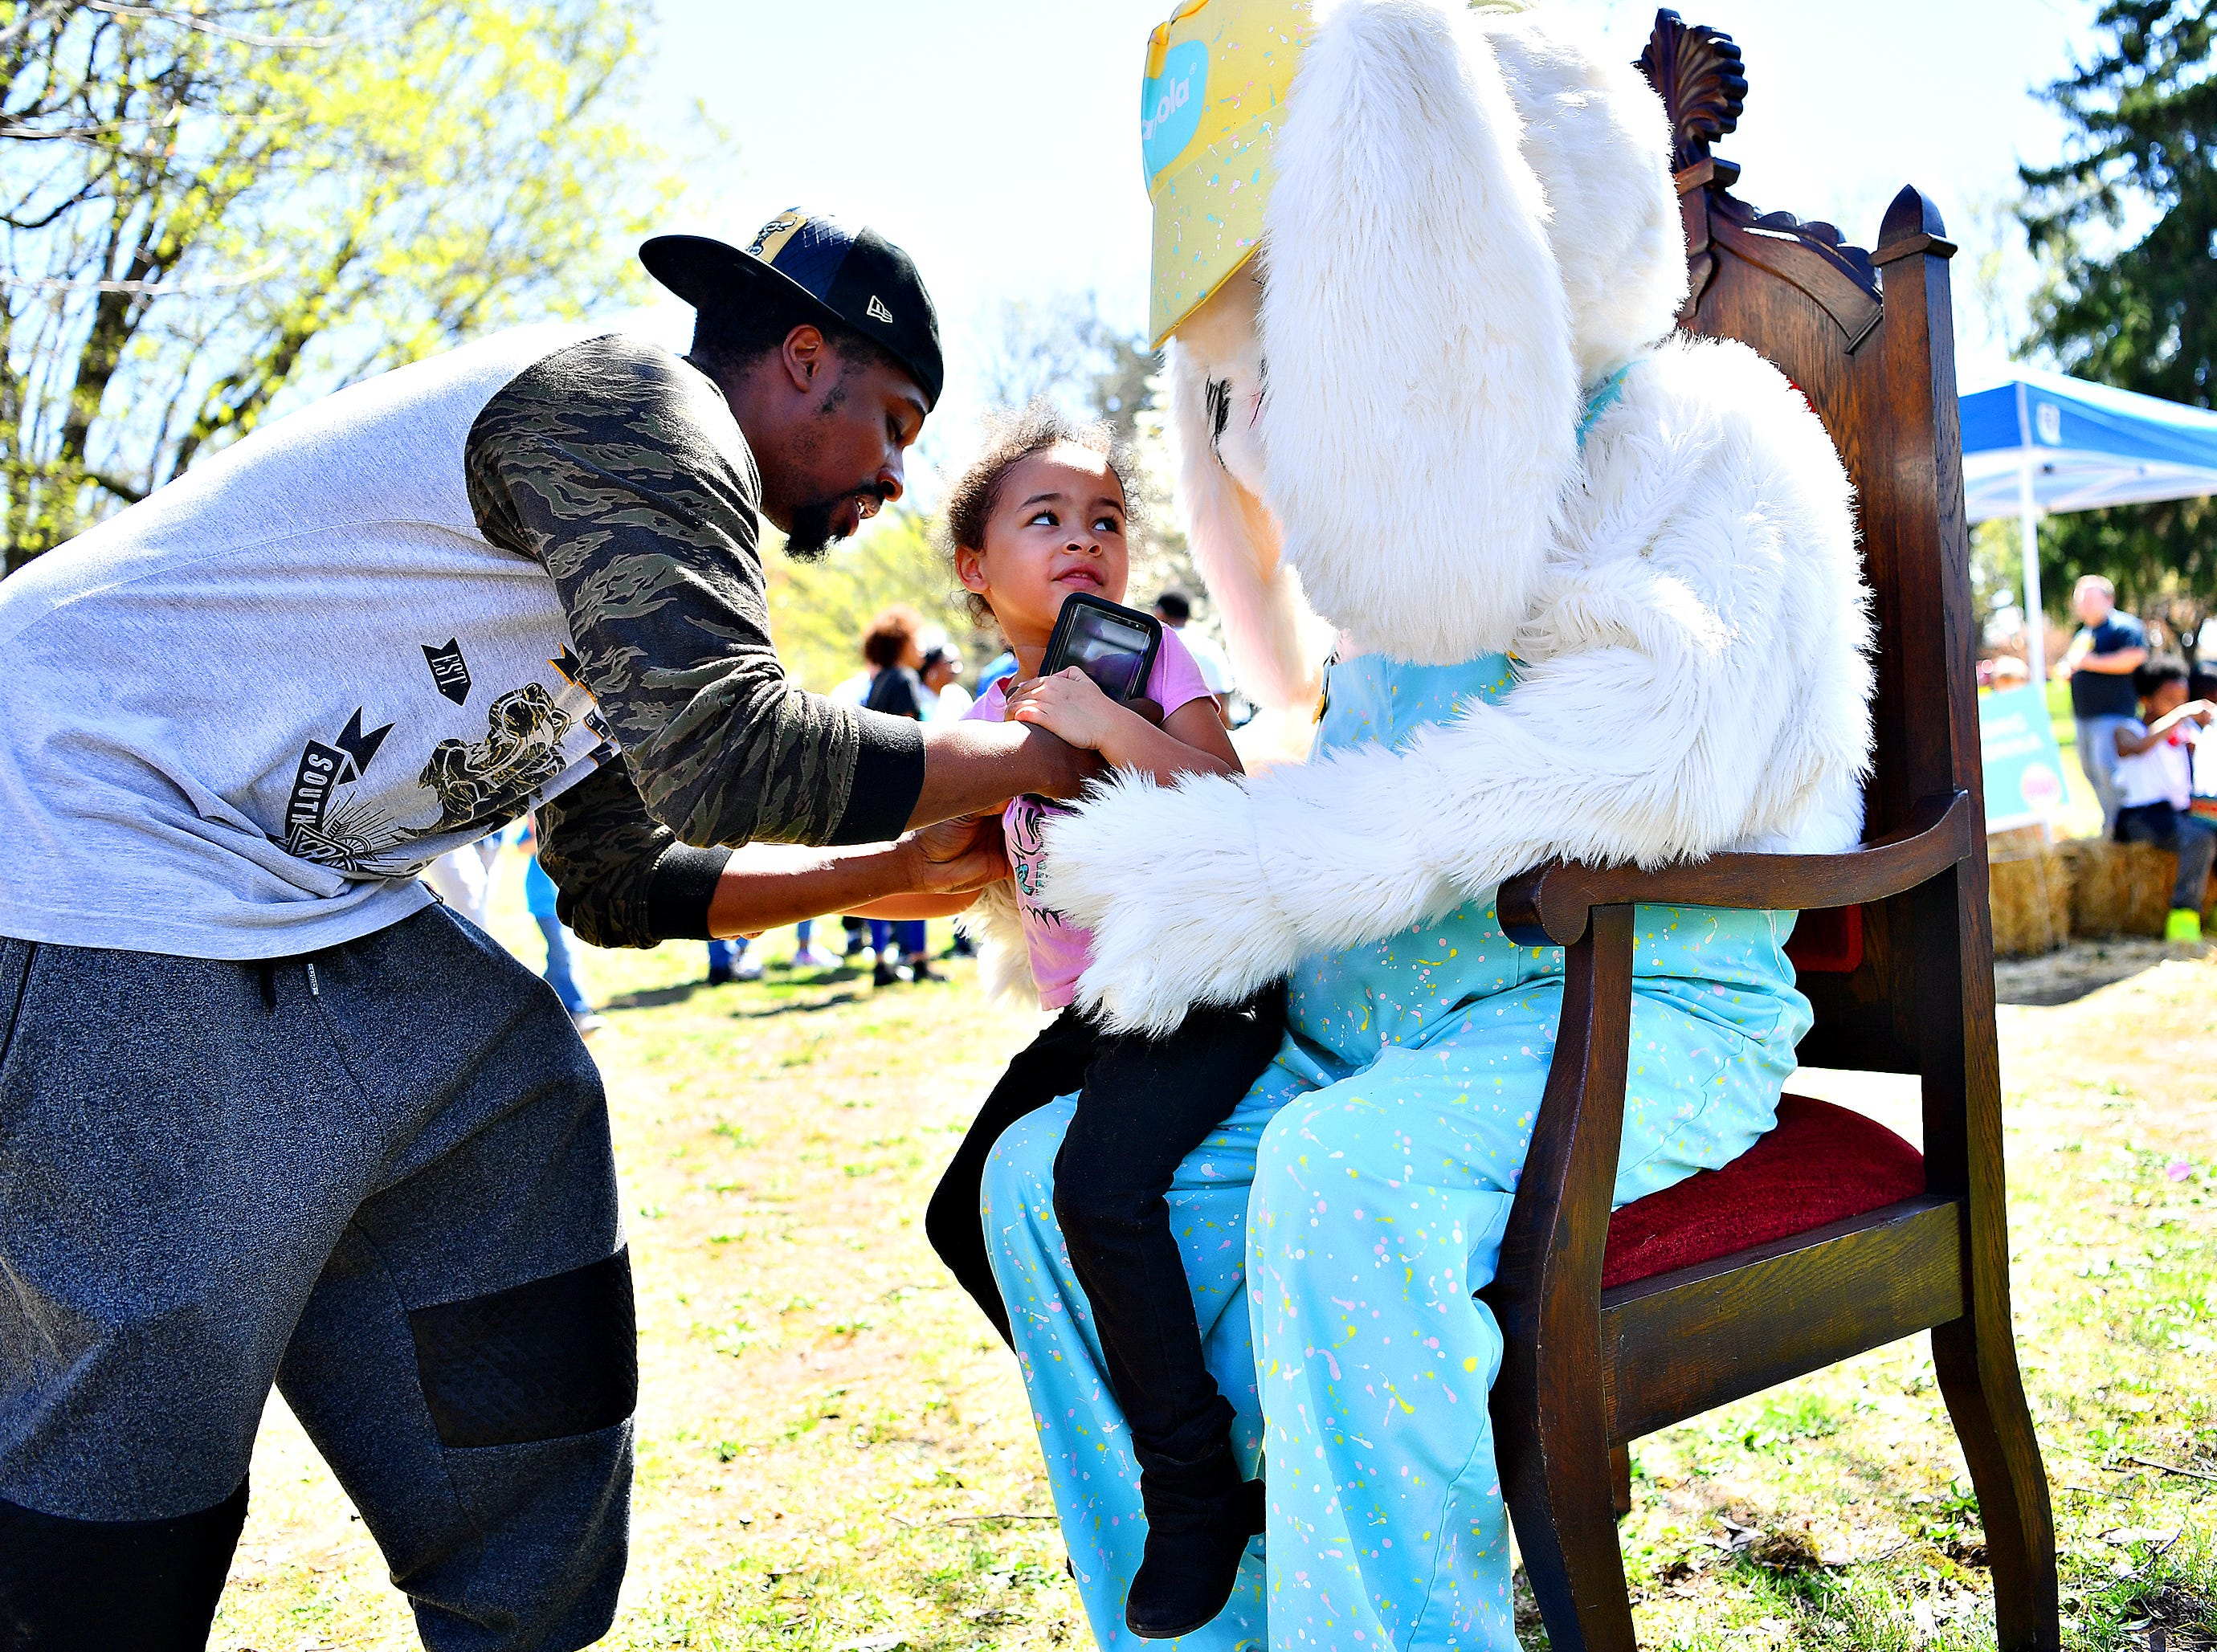 The Easter Bunny poses for photos with children during the 44th Annual York City Easter Egg Hunt at Kiwanis Lake in York City, Saturday, April 13, 2019. Dawn J. Sagert photo